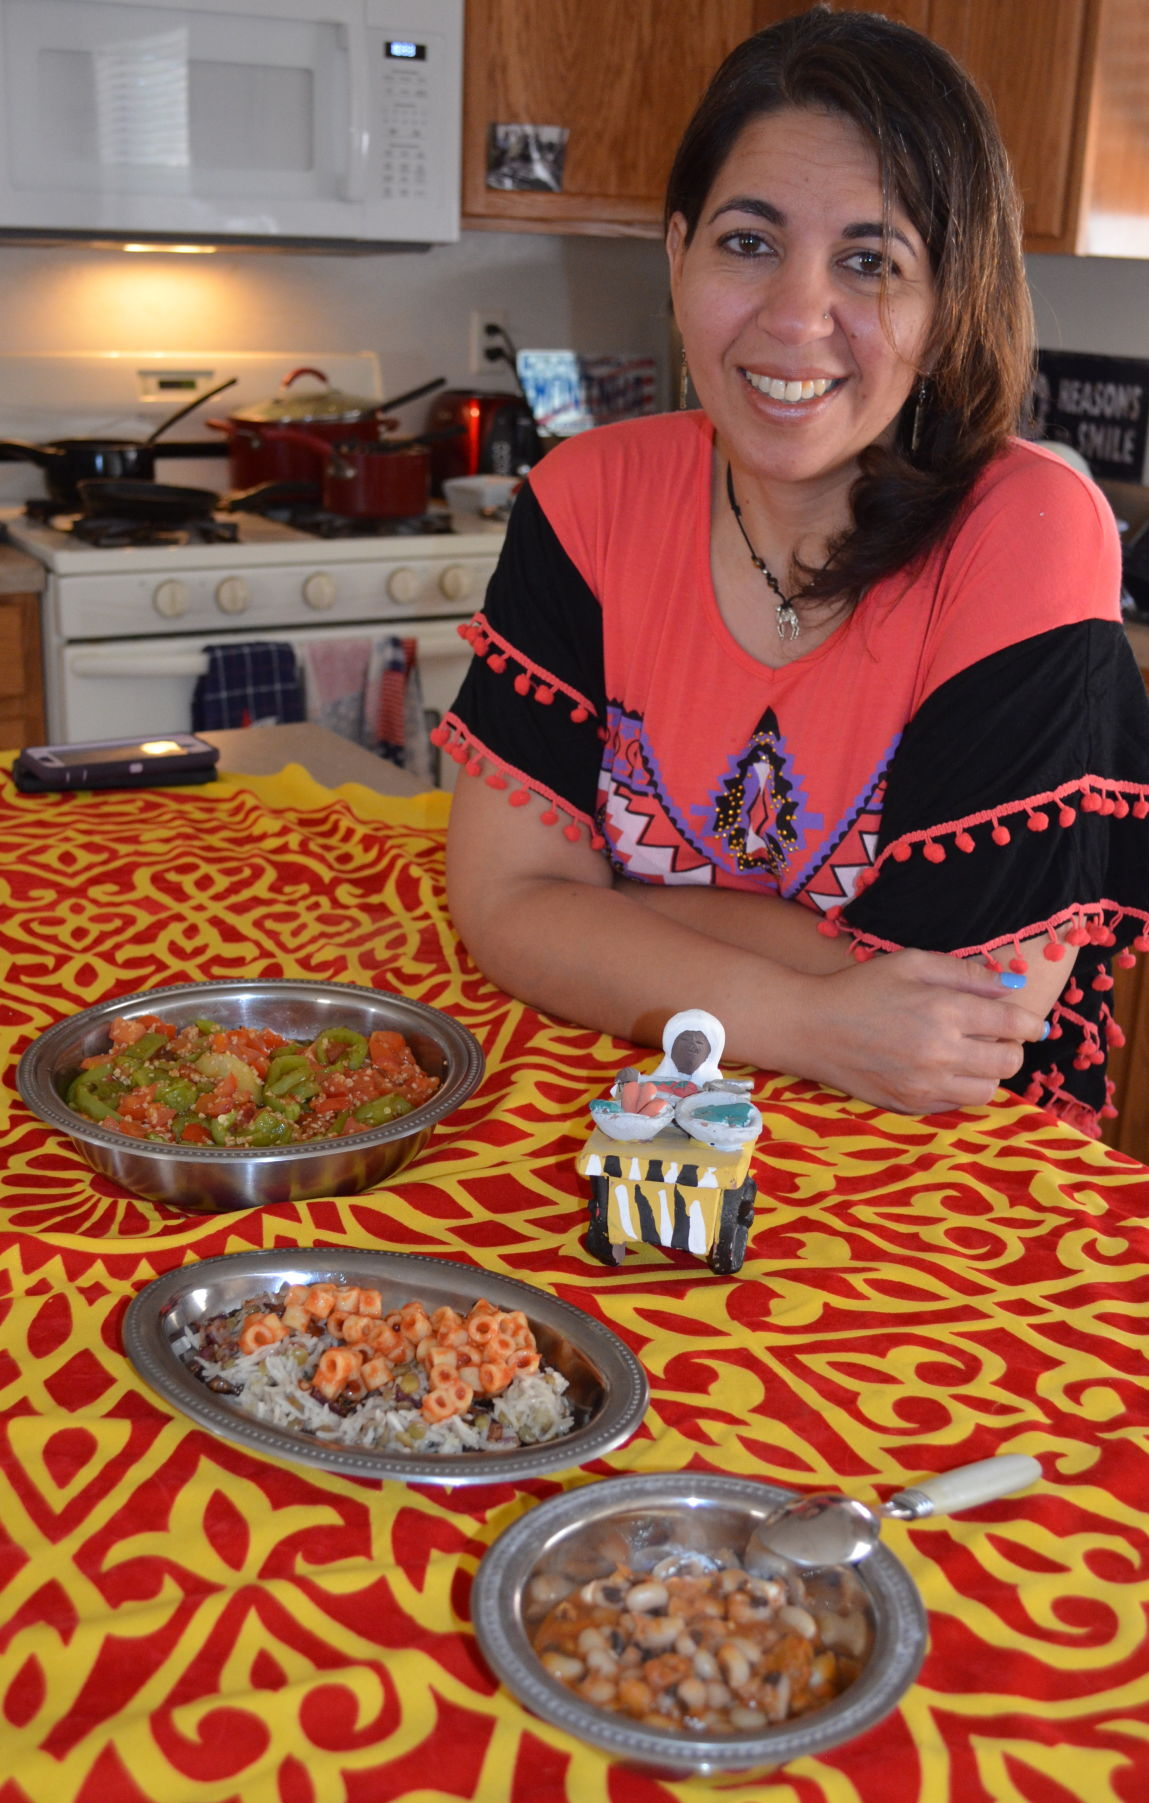 A World of Flavors: Fresh Egyptian cuisine — Savoring foods from 'mother of the world'